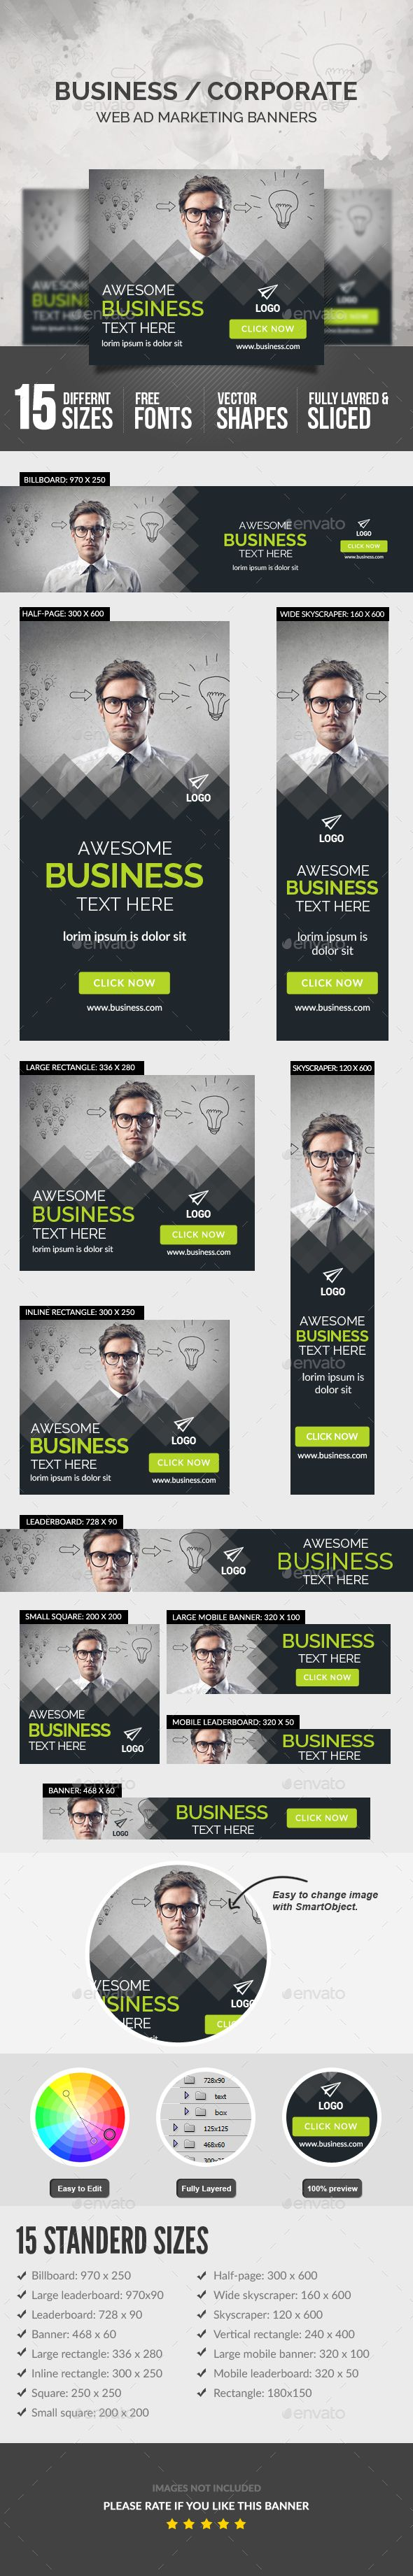 Business Banners — Photoshop PSD #advertise #social media • Available here → https://graphicriver.net/item/business-banners/18032488?ref=pxcr